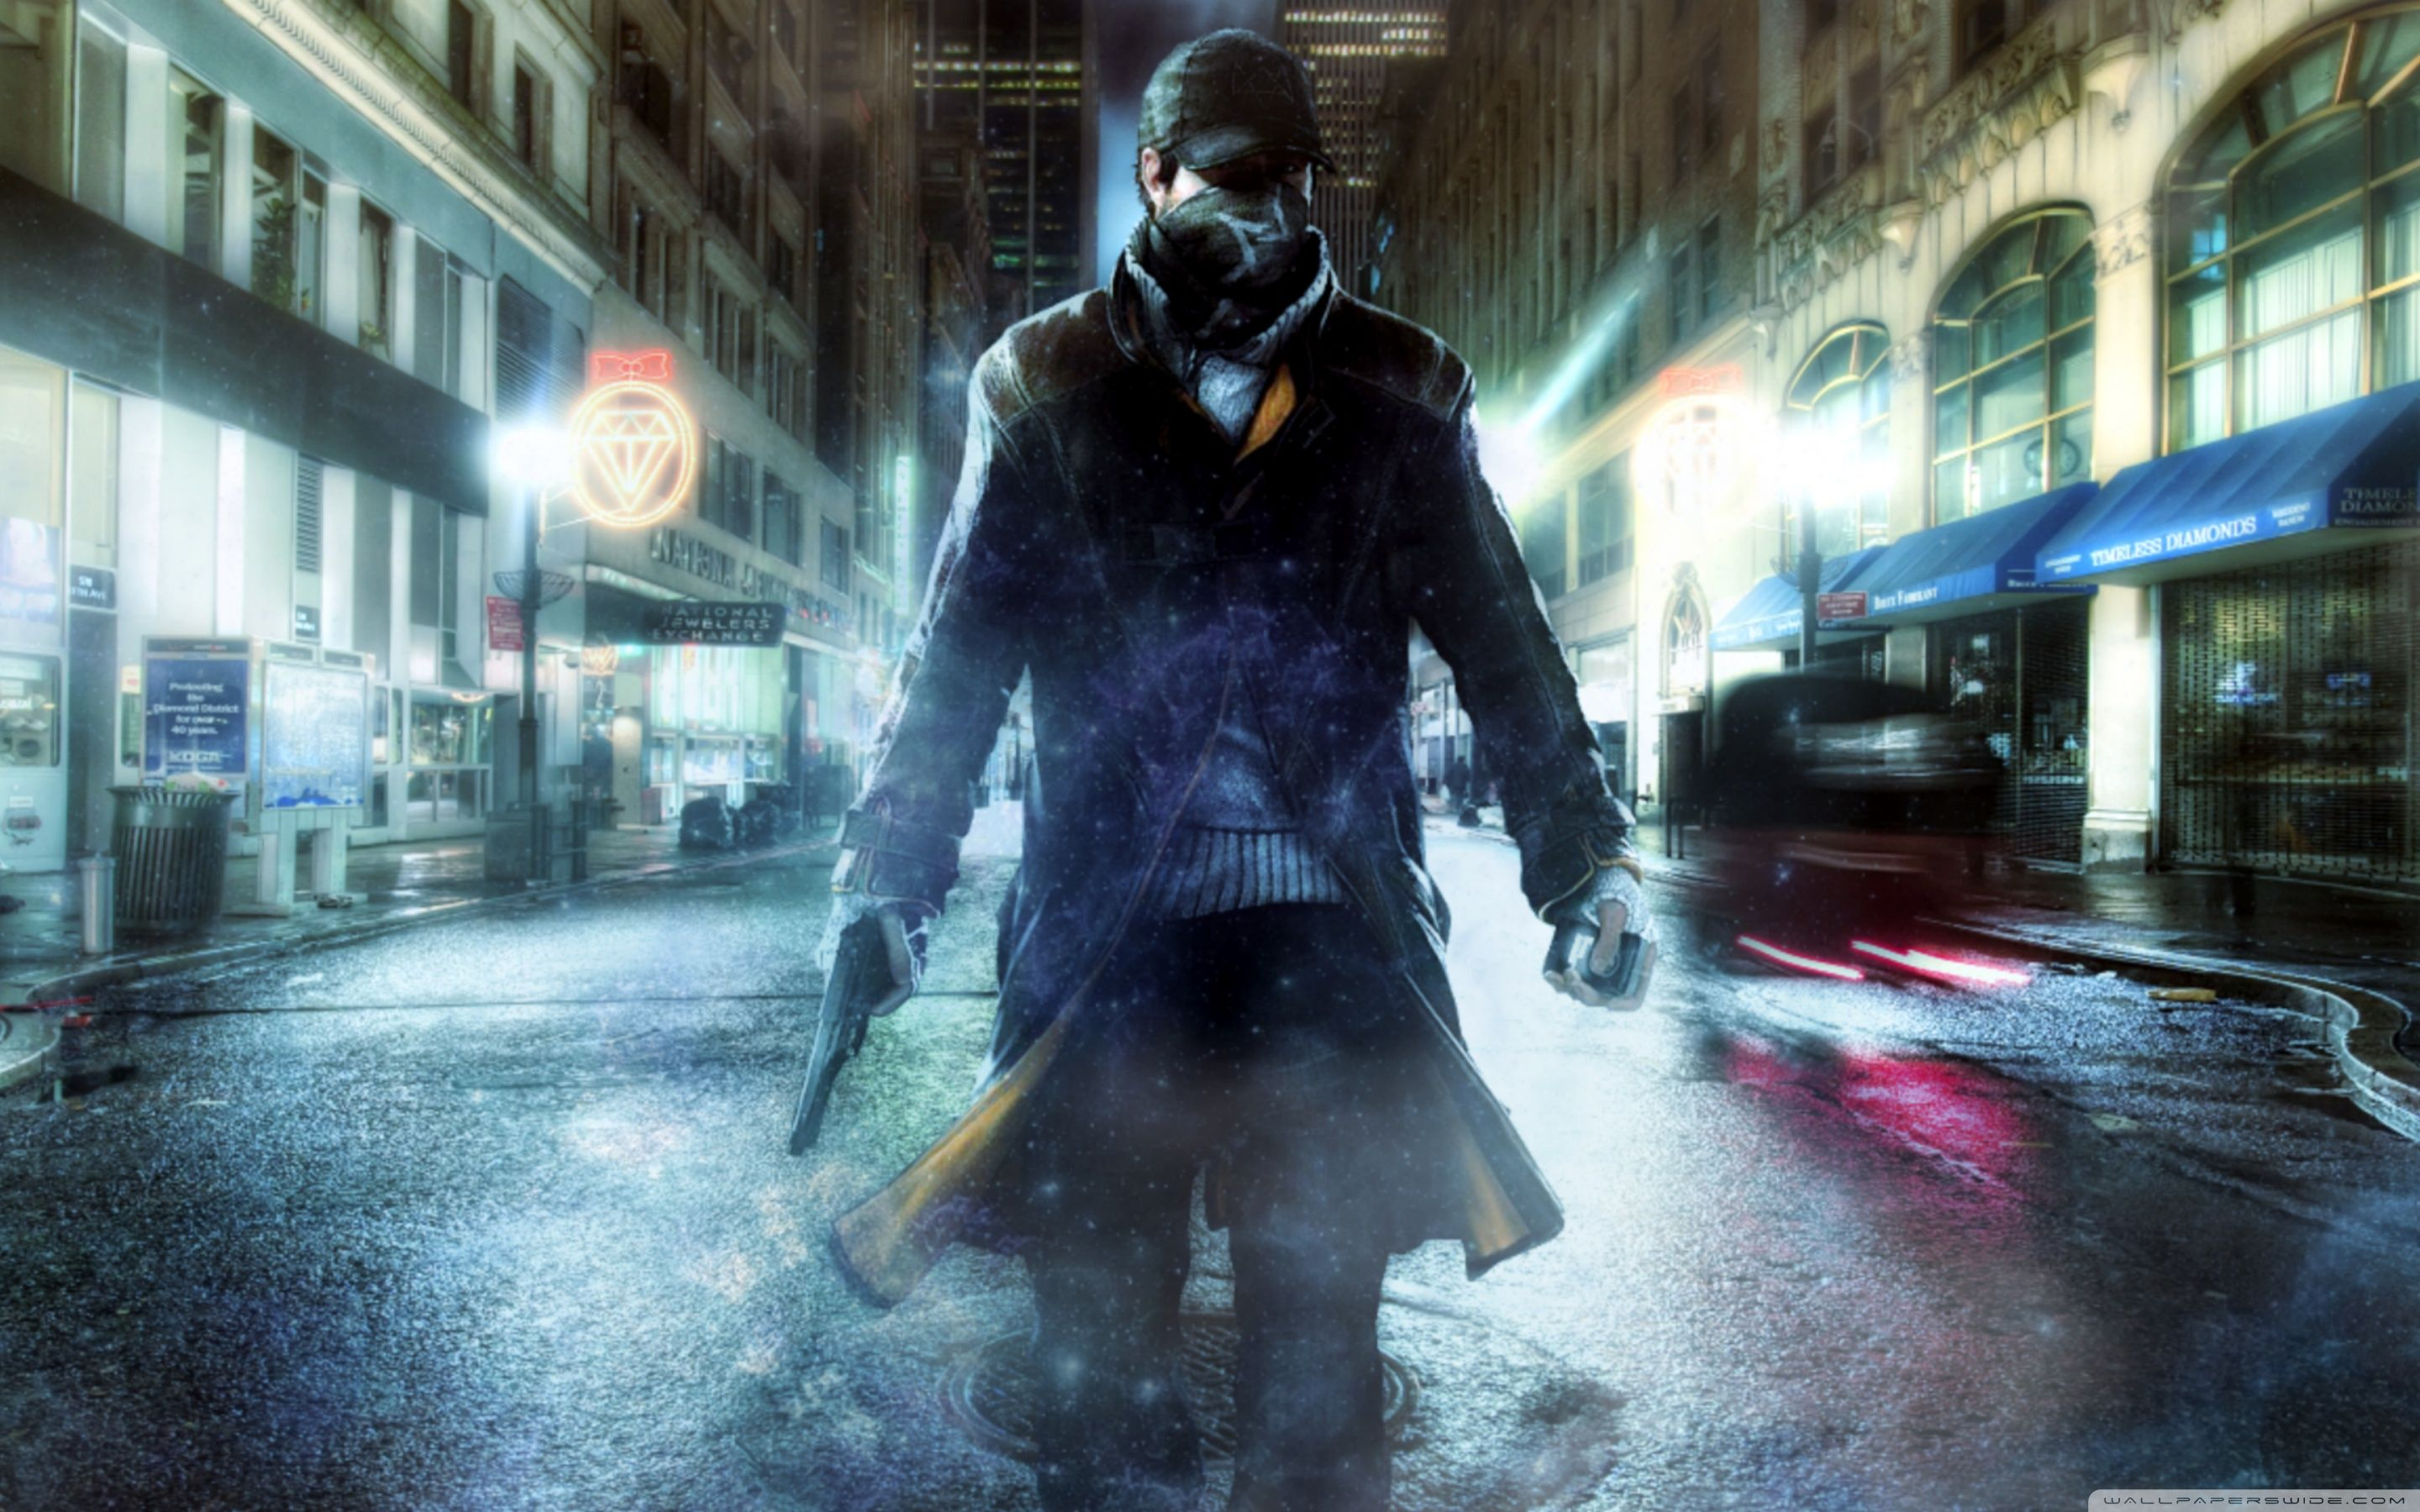 Ps4 Watch Dogs 4k Wallpapers Top Free Ps4 Watch Dogs 4k Images, Photos, Reviews